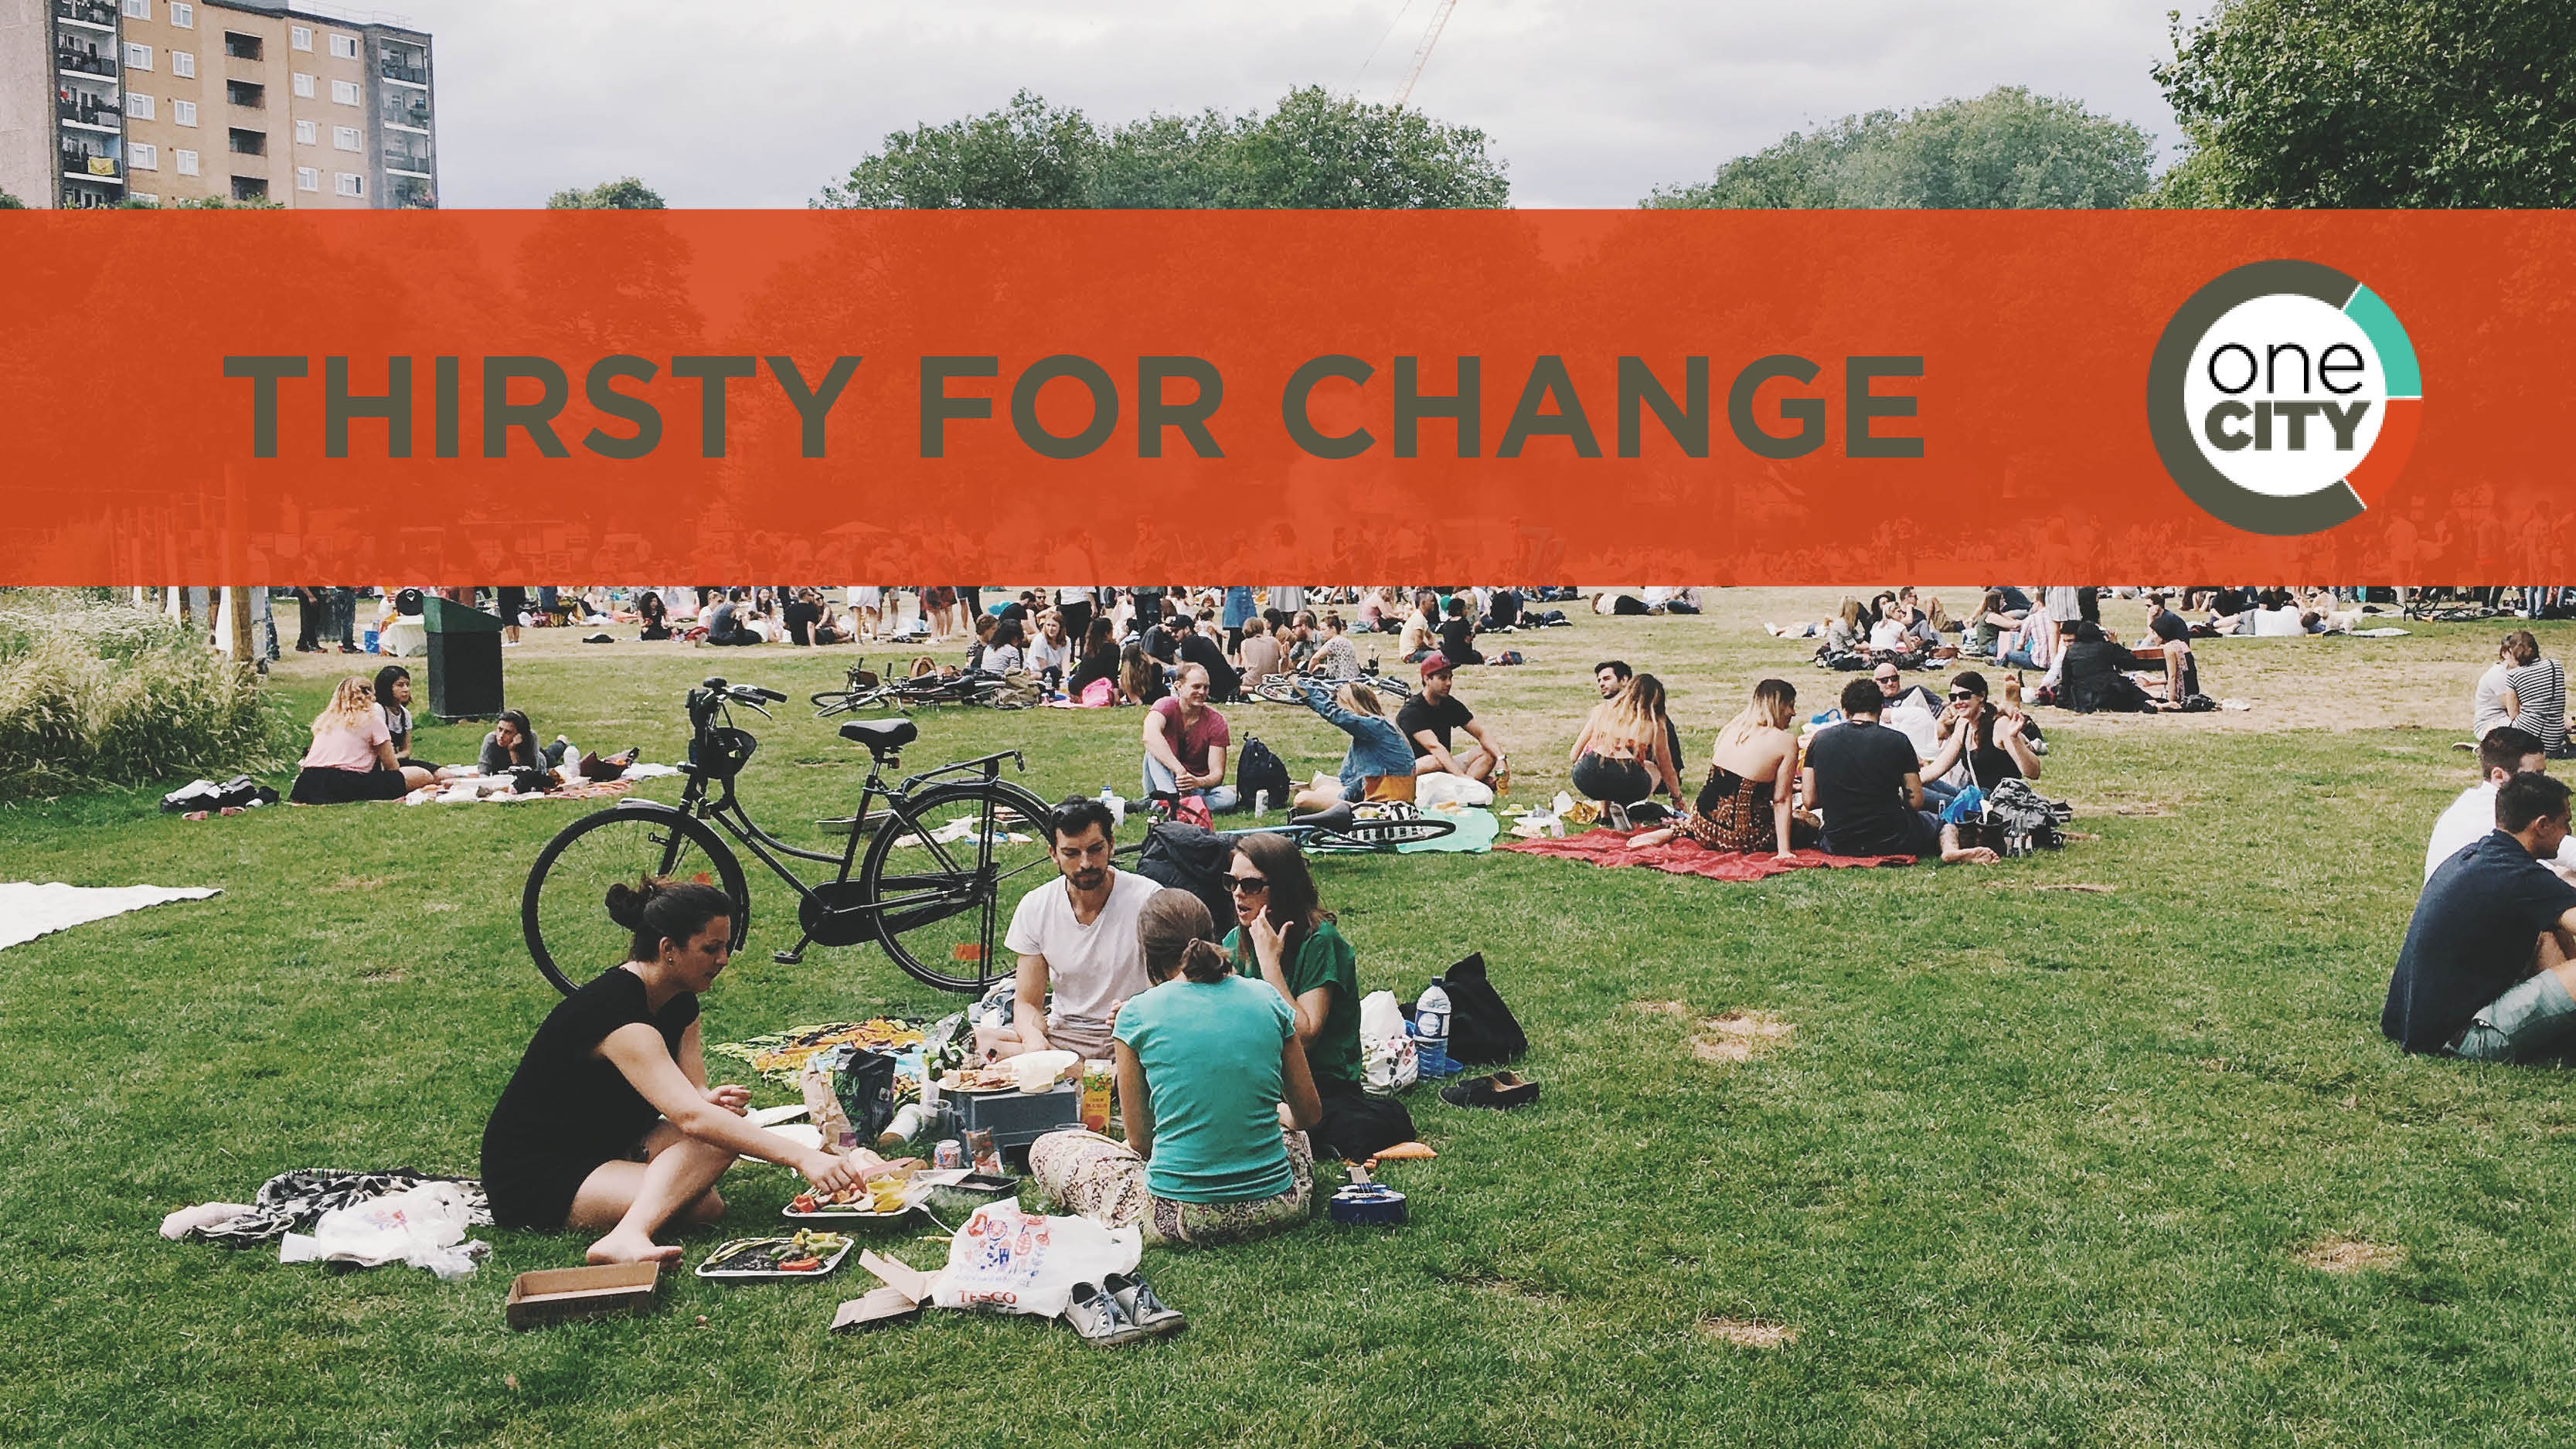 Groups of people sitting in a public park with thirsty for change written as text